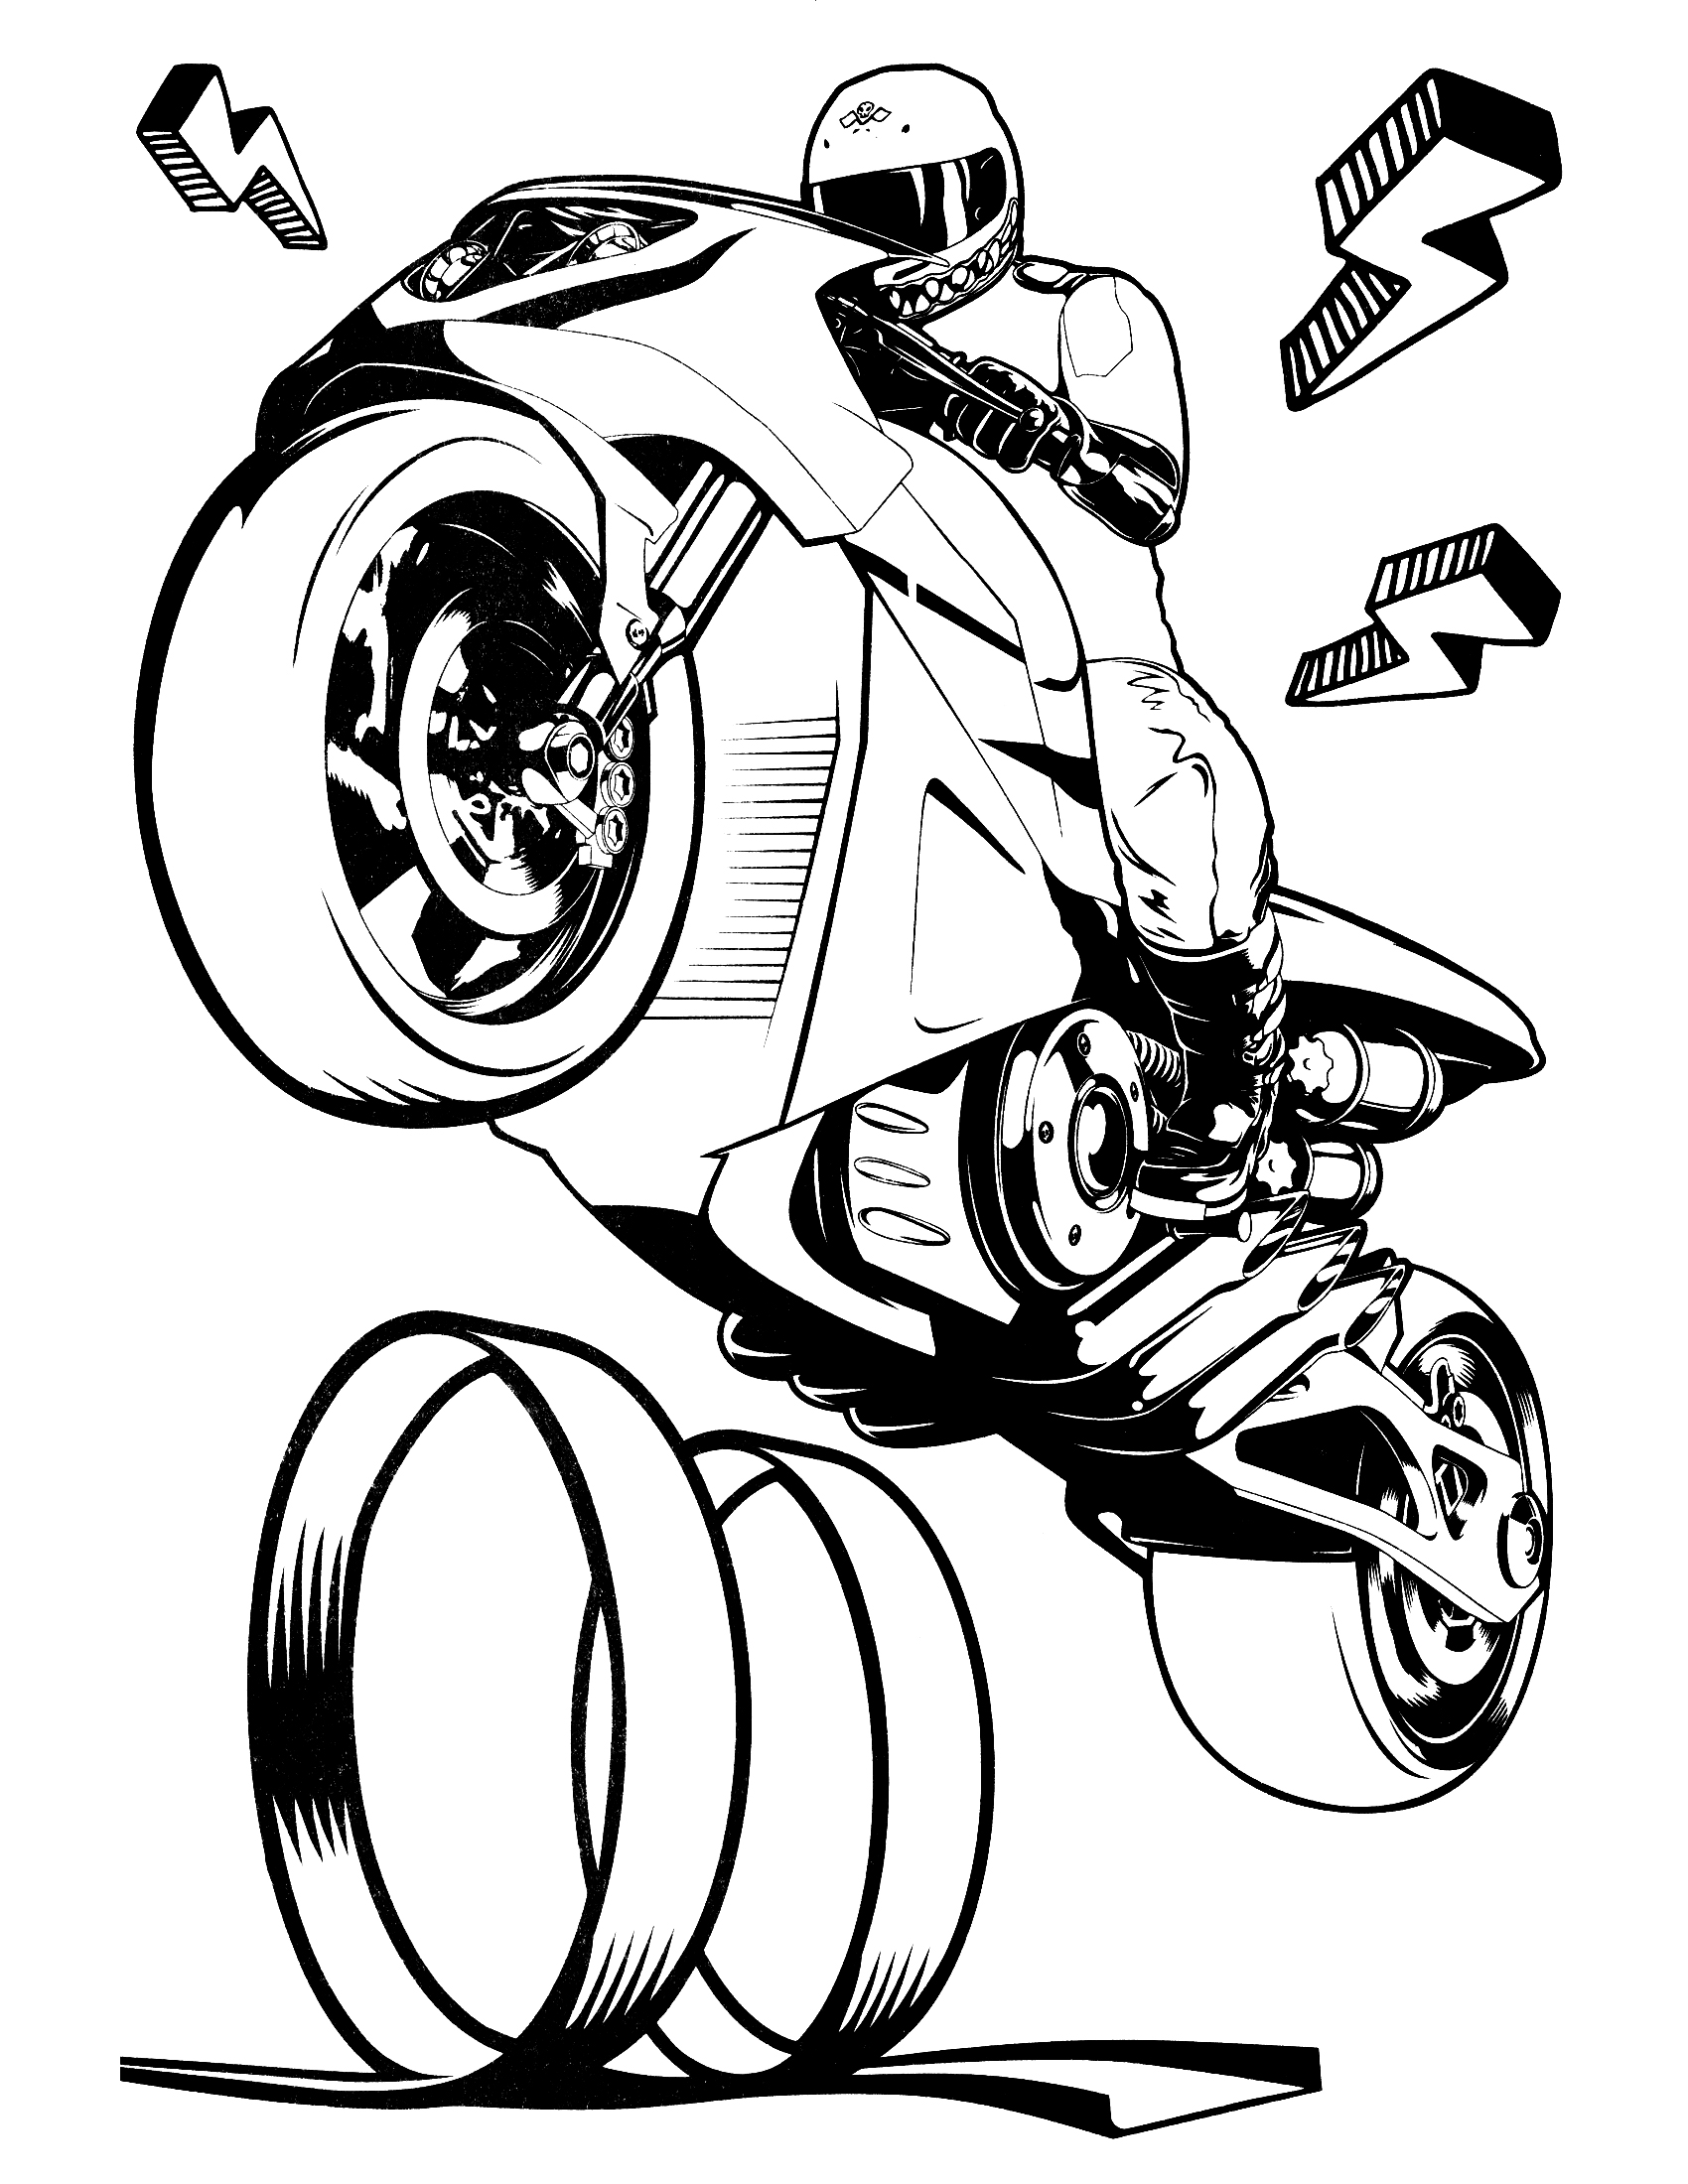 hotwheels colouring pages hot wheel coloring pages to download and print for free colouring pages hotwheels